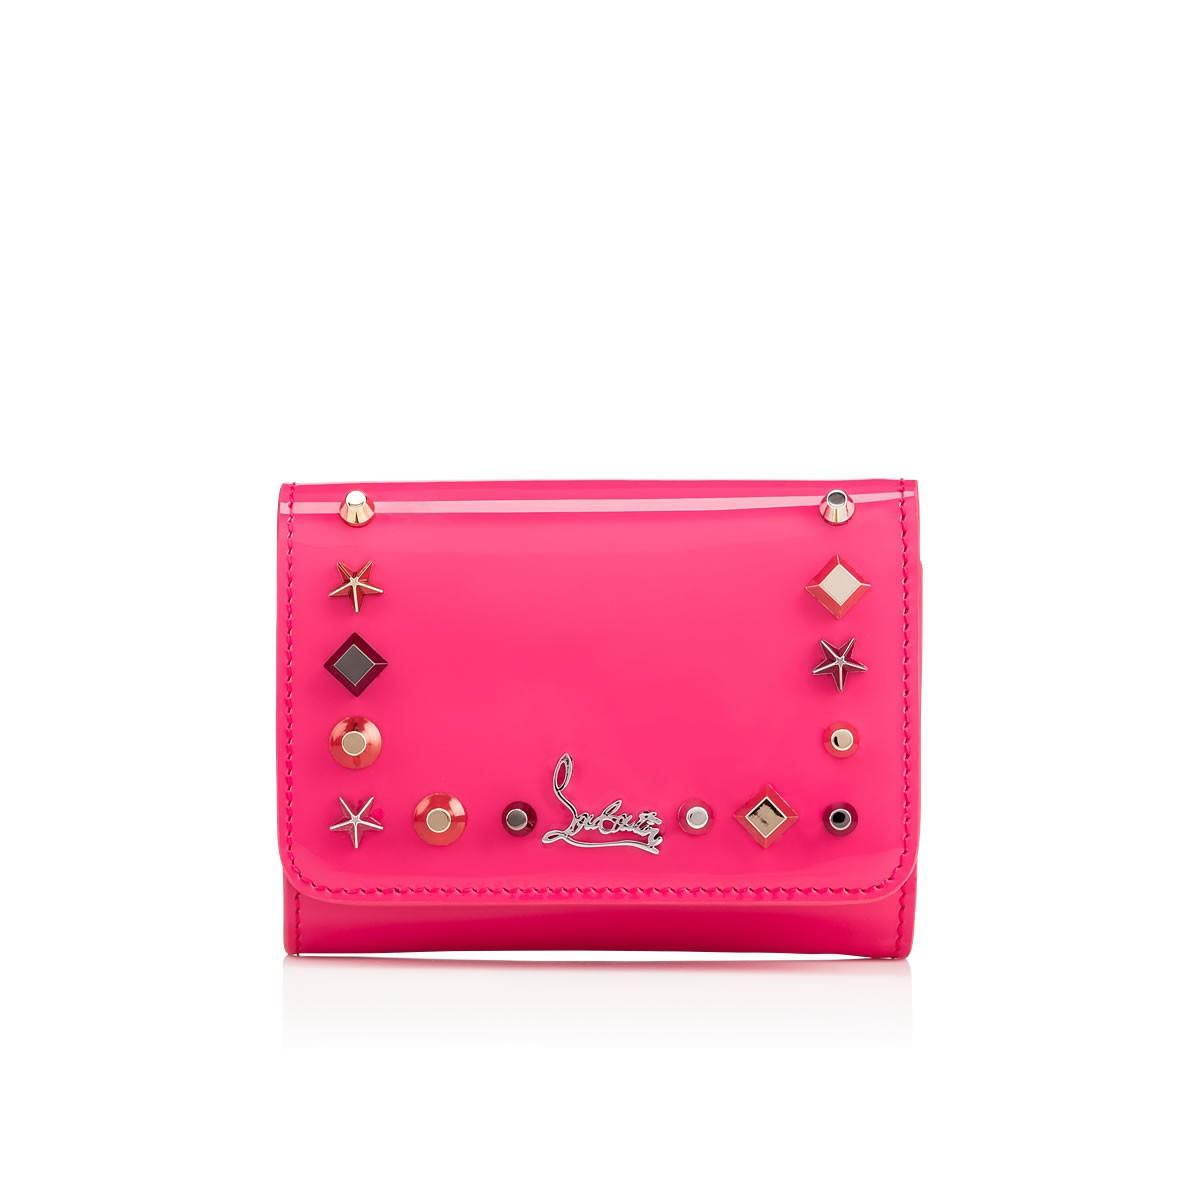 Christian Louboutin Macaron Spiked Patent-Leather Wallet In Darling